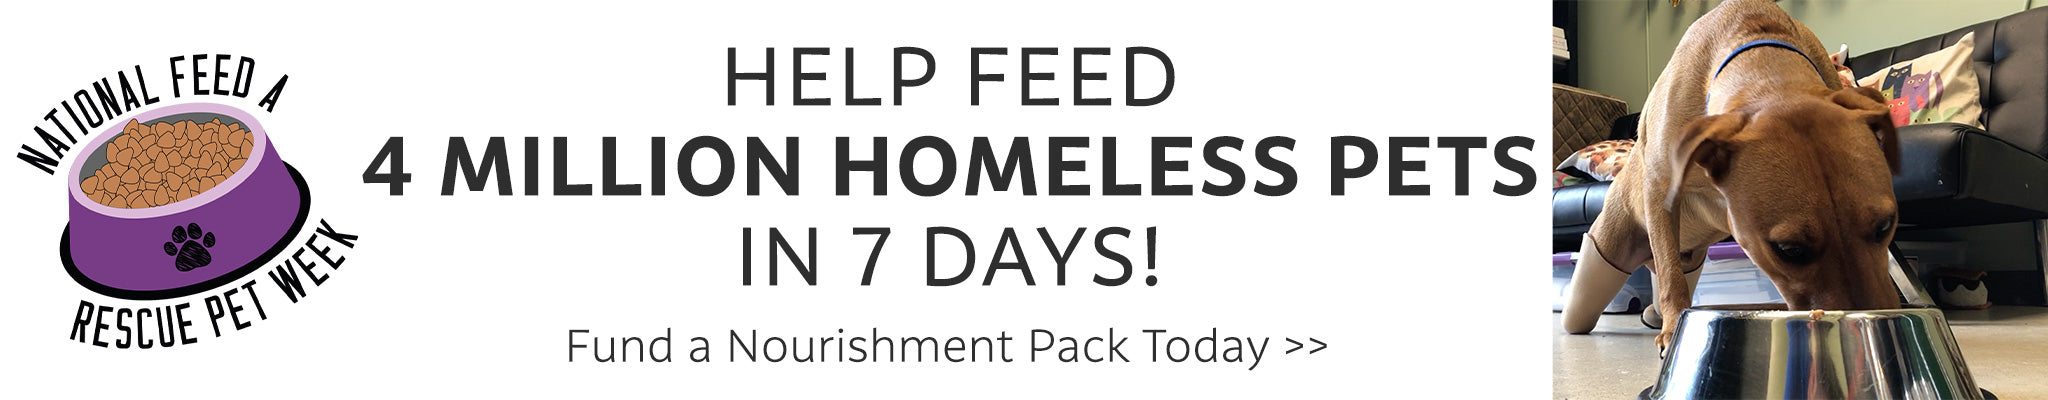 Help Feed 4 Million Homeless Pets in 7 Days! Fund a Nourishment Pack Today